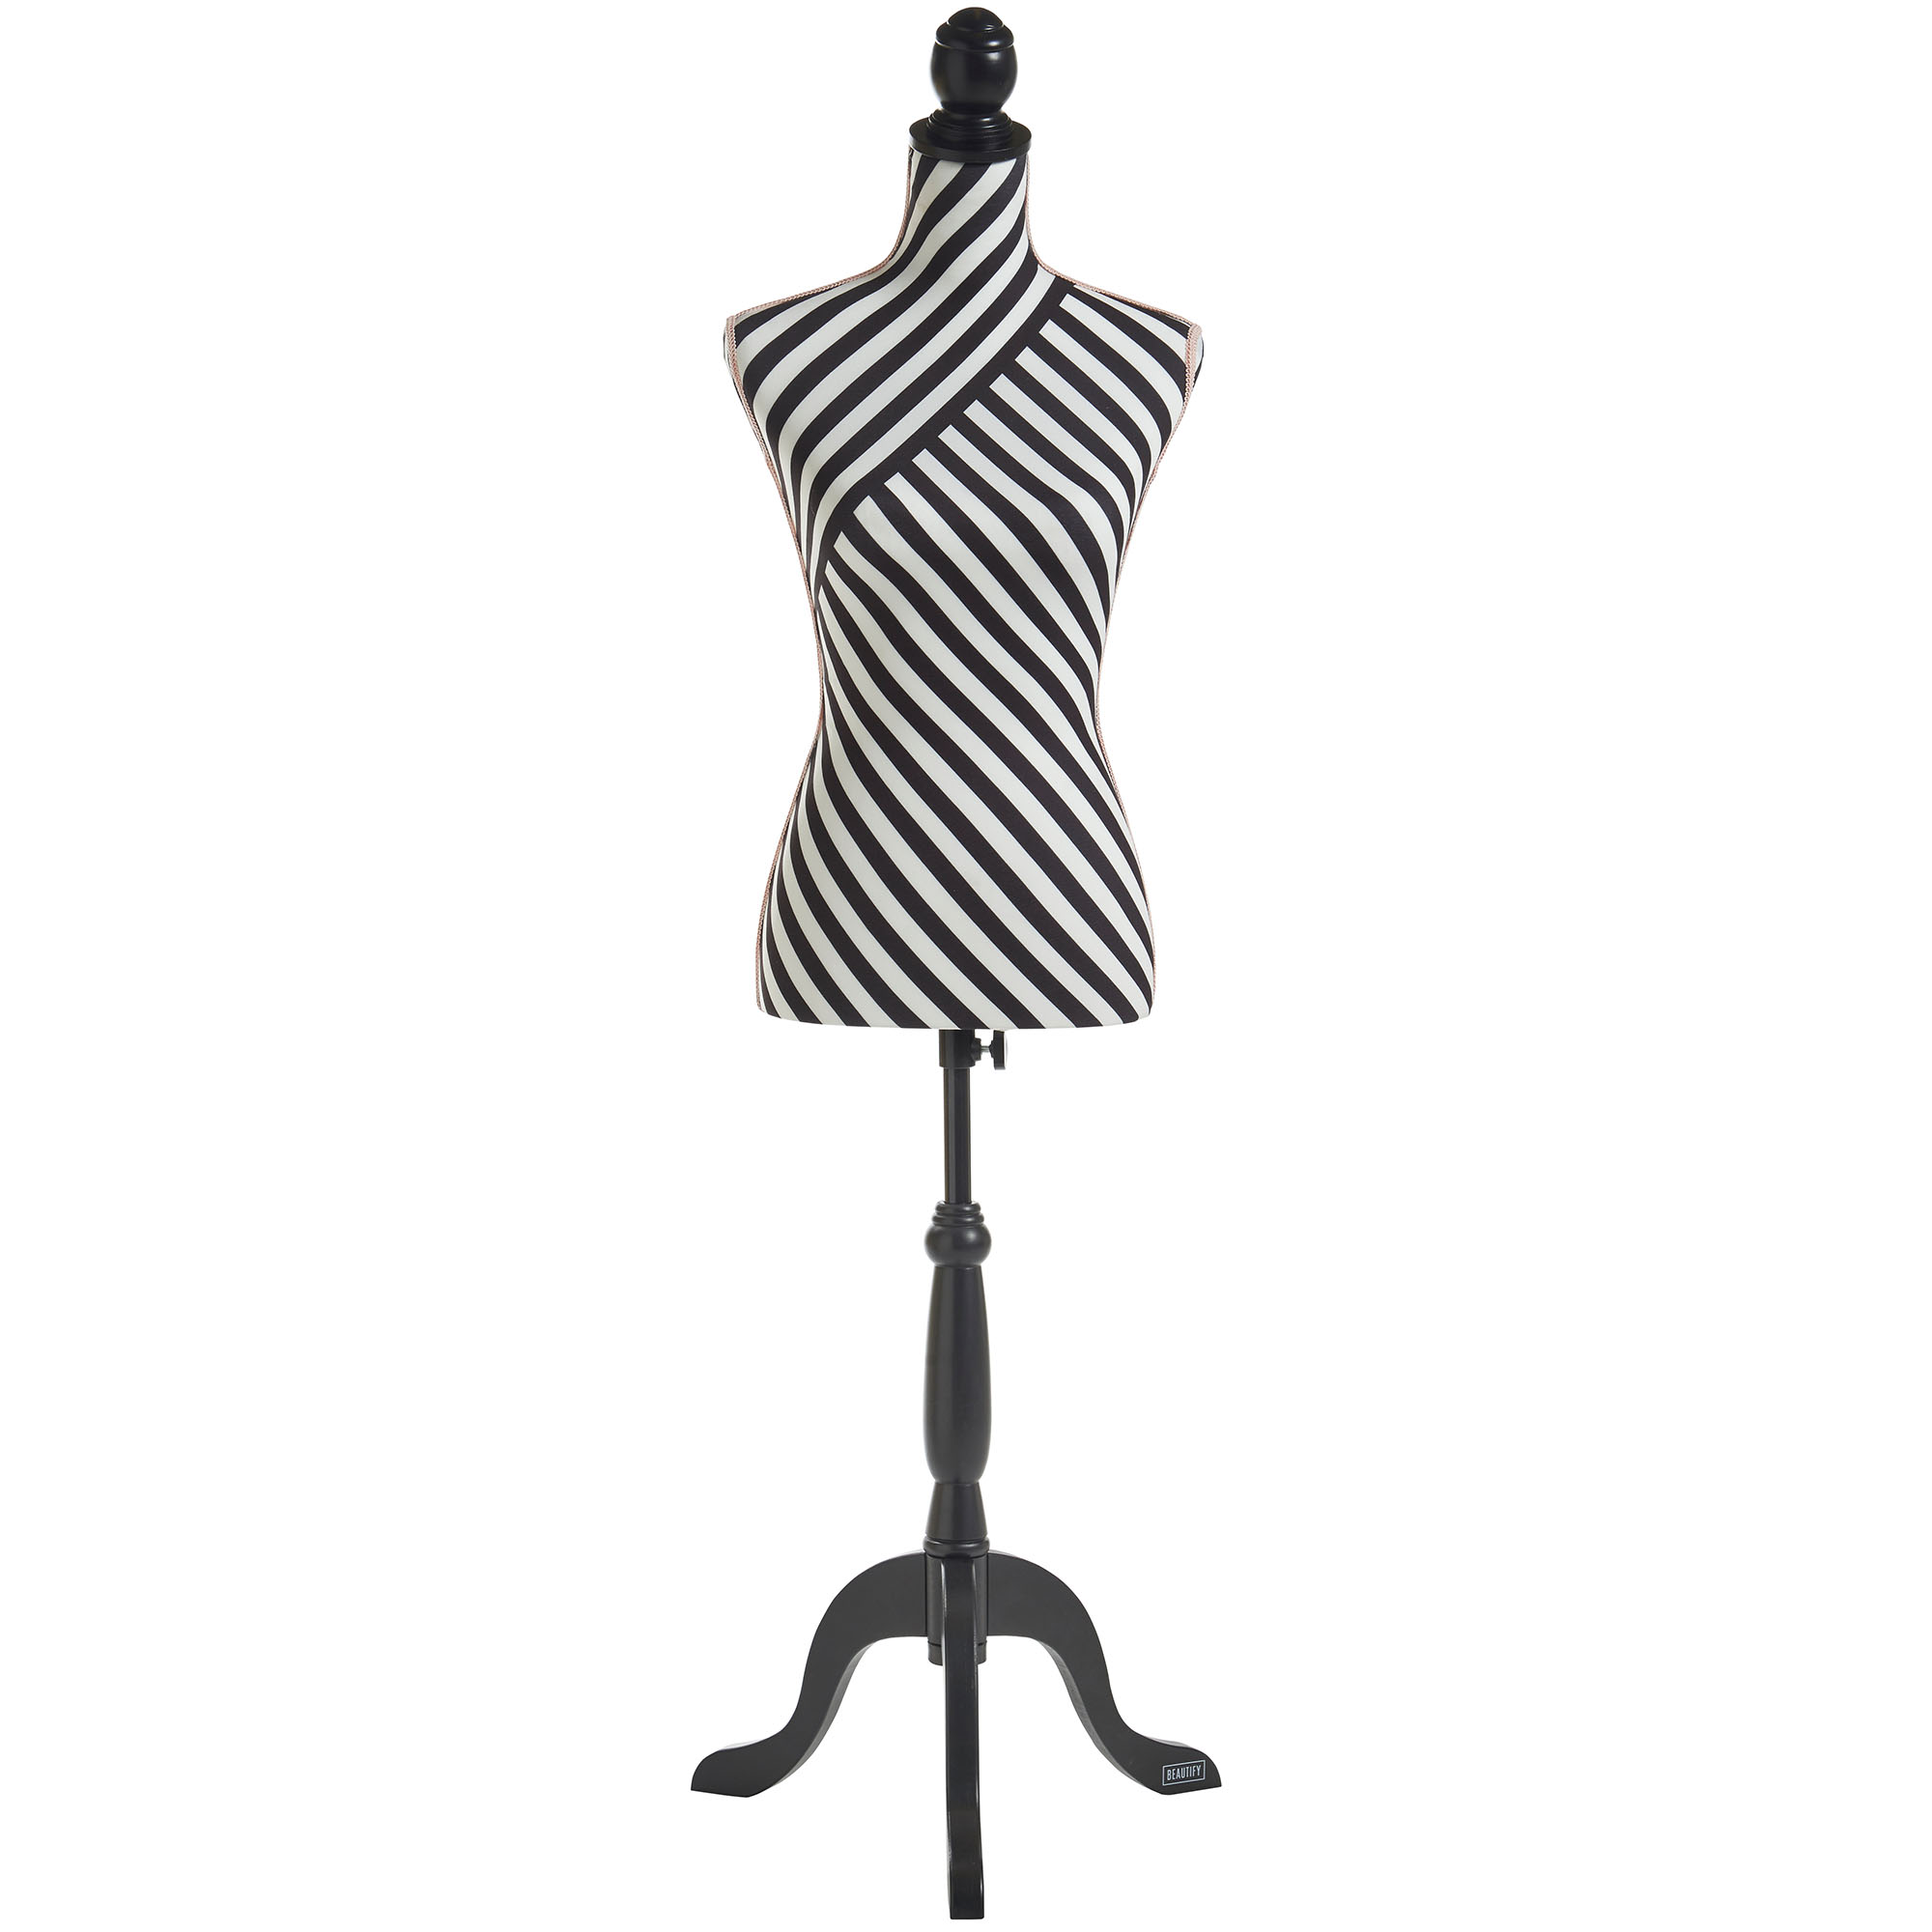 beautify female dressmaking tailor dummy bust stand fashion mannequin size 8 10 ebay. Black Bedroom Furniture Sets. Home Design Ideas